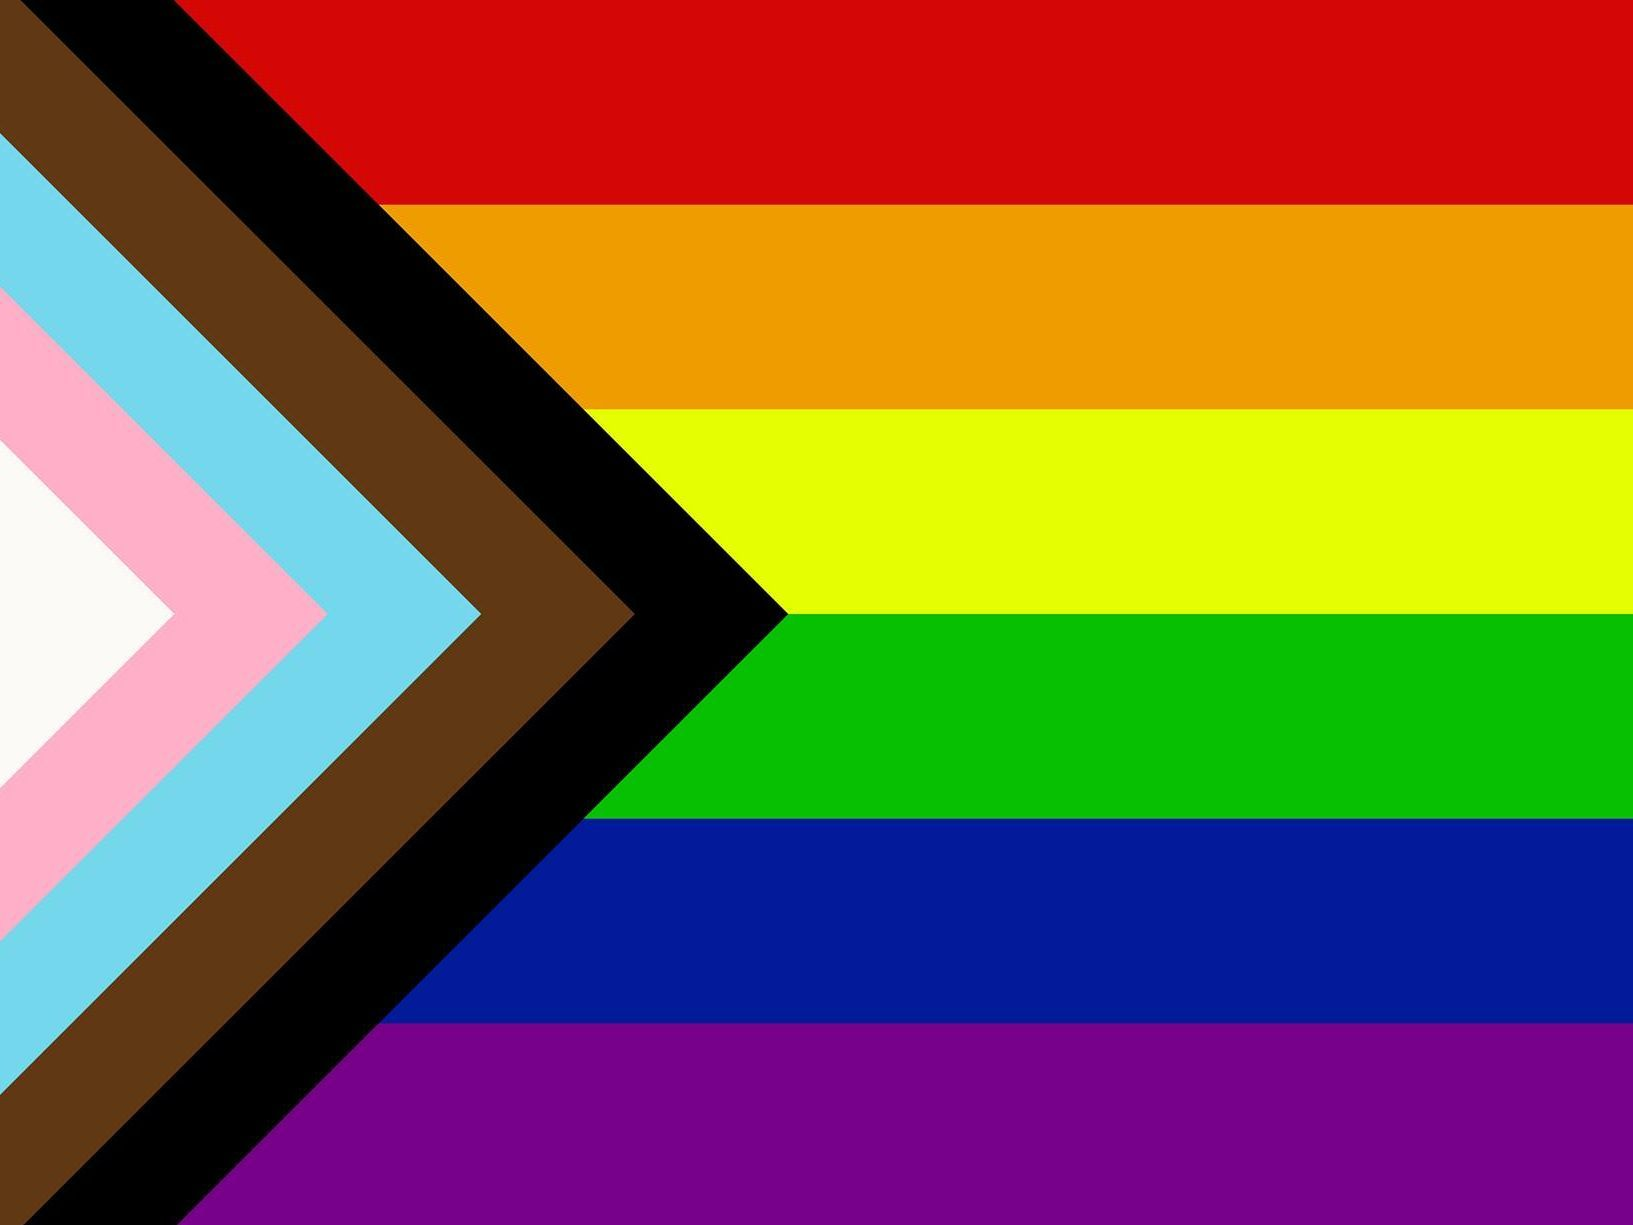 The LGBTQA flag, featuring the colors white, pink, light blue, brown, black, red, orange, yellow, green, blue, and purple